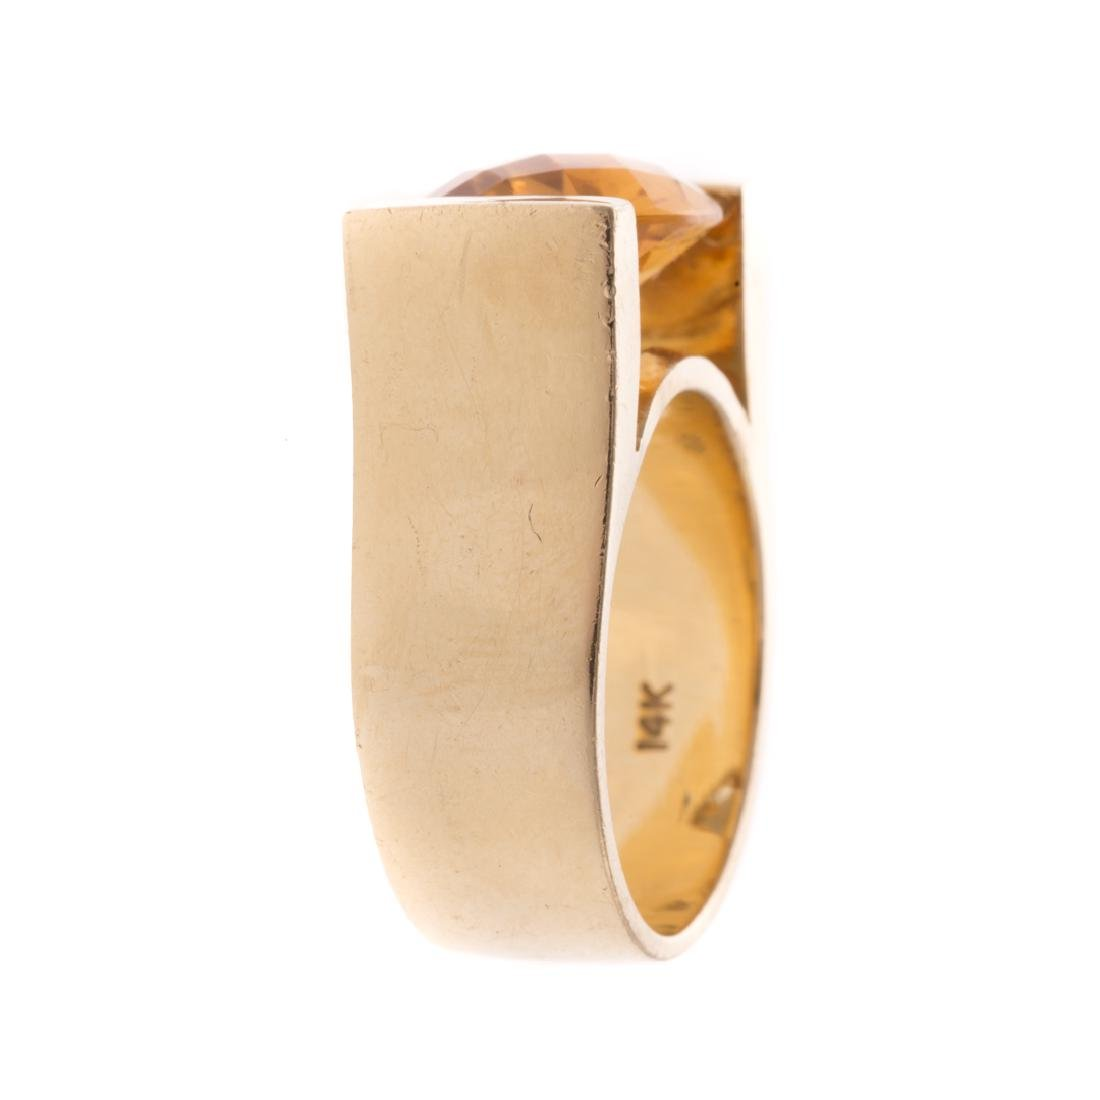 A Lady's Citrine Ring in 14K Gold - 2